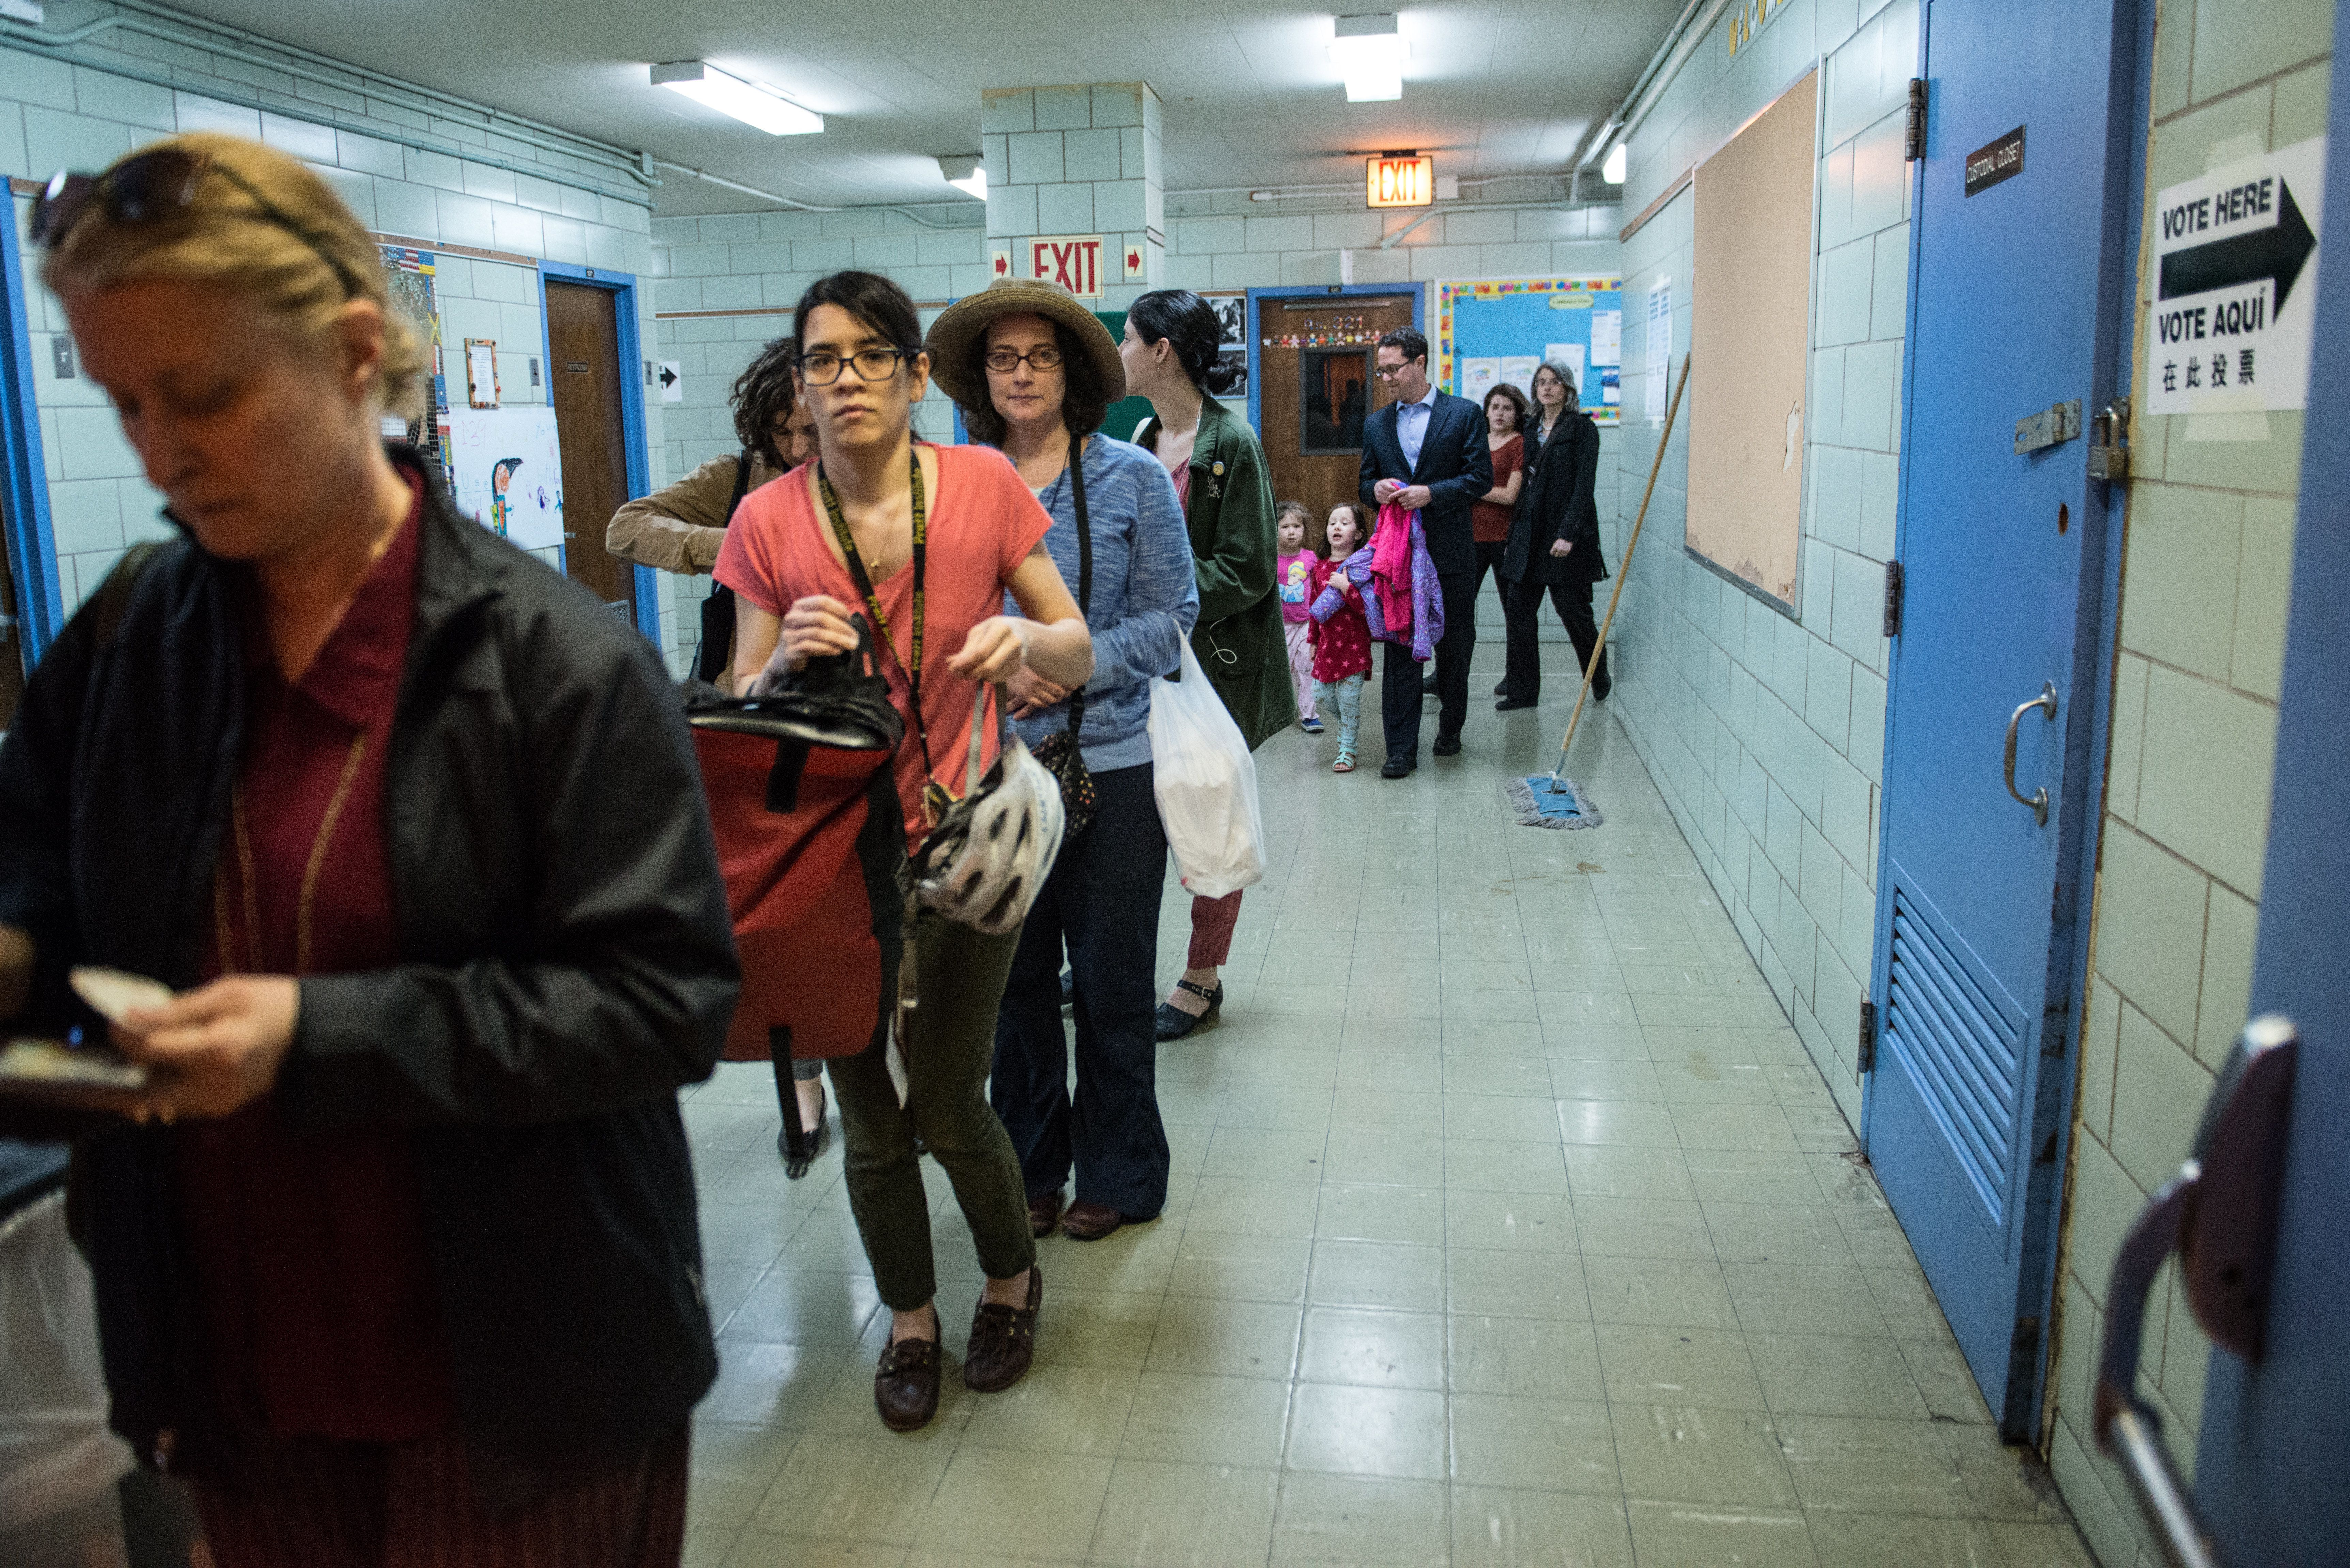 NEW YORK, NY - APRIL 19: People line up to check into their voting station at Public School 321 on April 19, 2016 in the Brooklyn borough of New York City. Voters are going to the polls in New York for the presidential primary election. (Photo by Stephanie Keith/Getty Images)